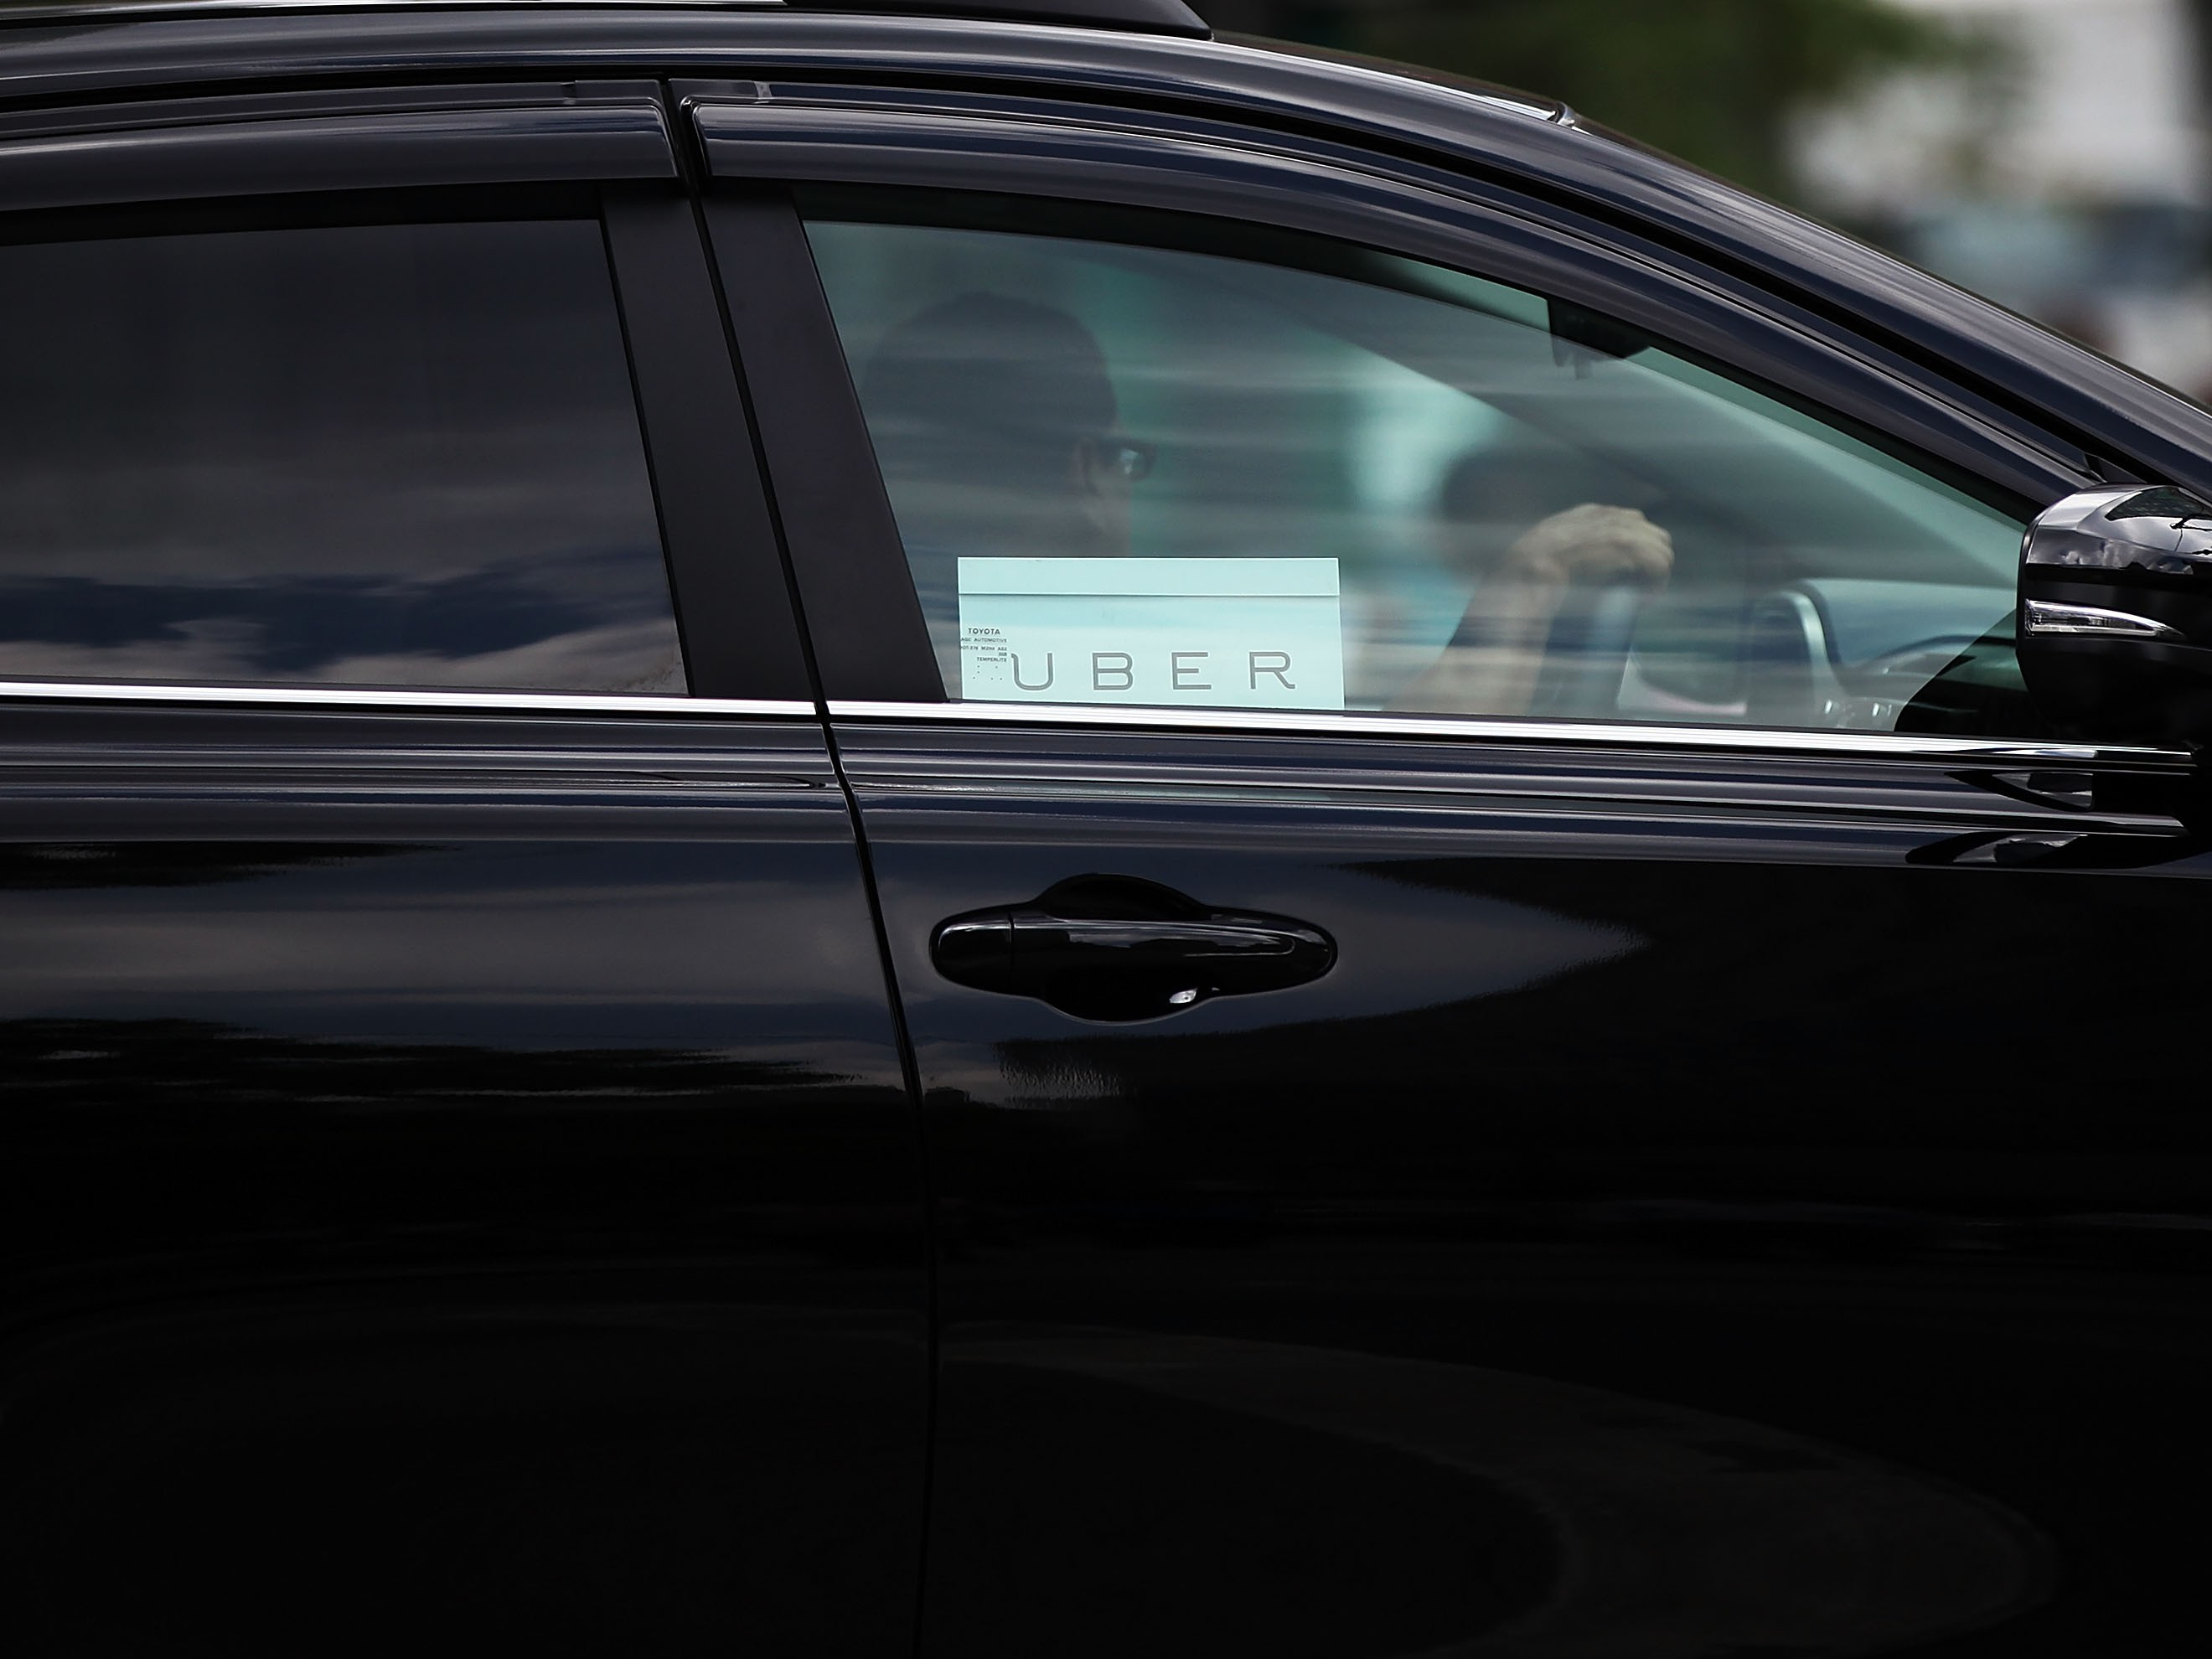 <> on July 20, 2015 in New York City. Uber